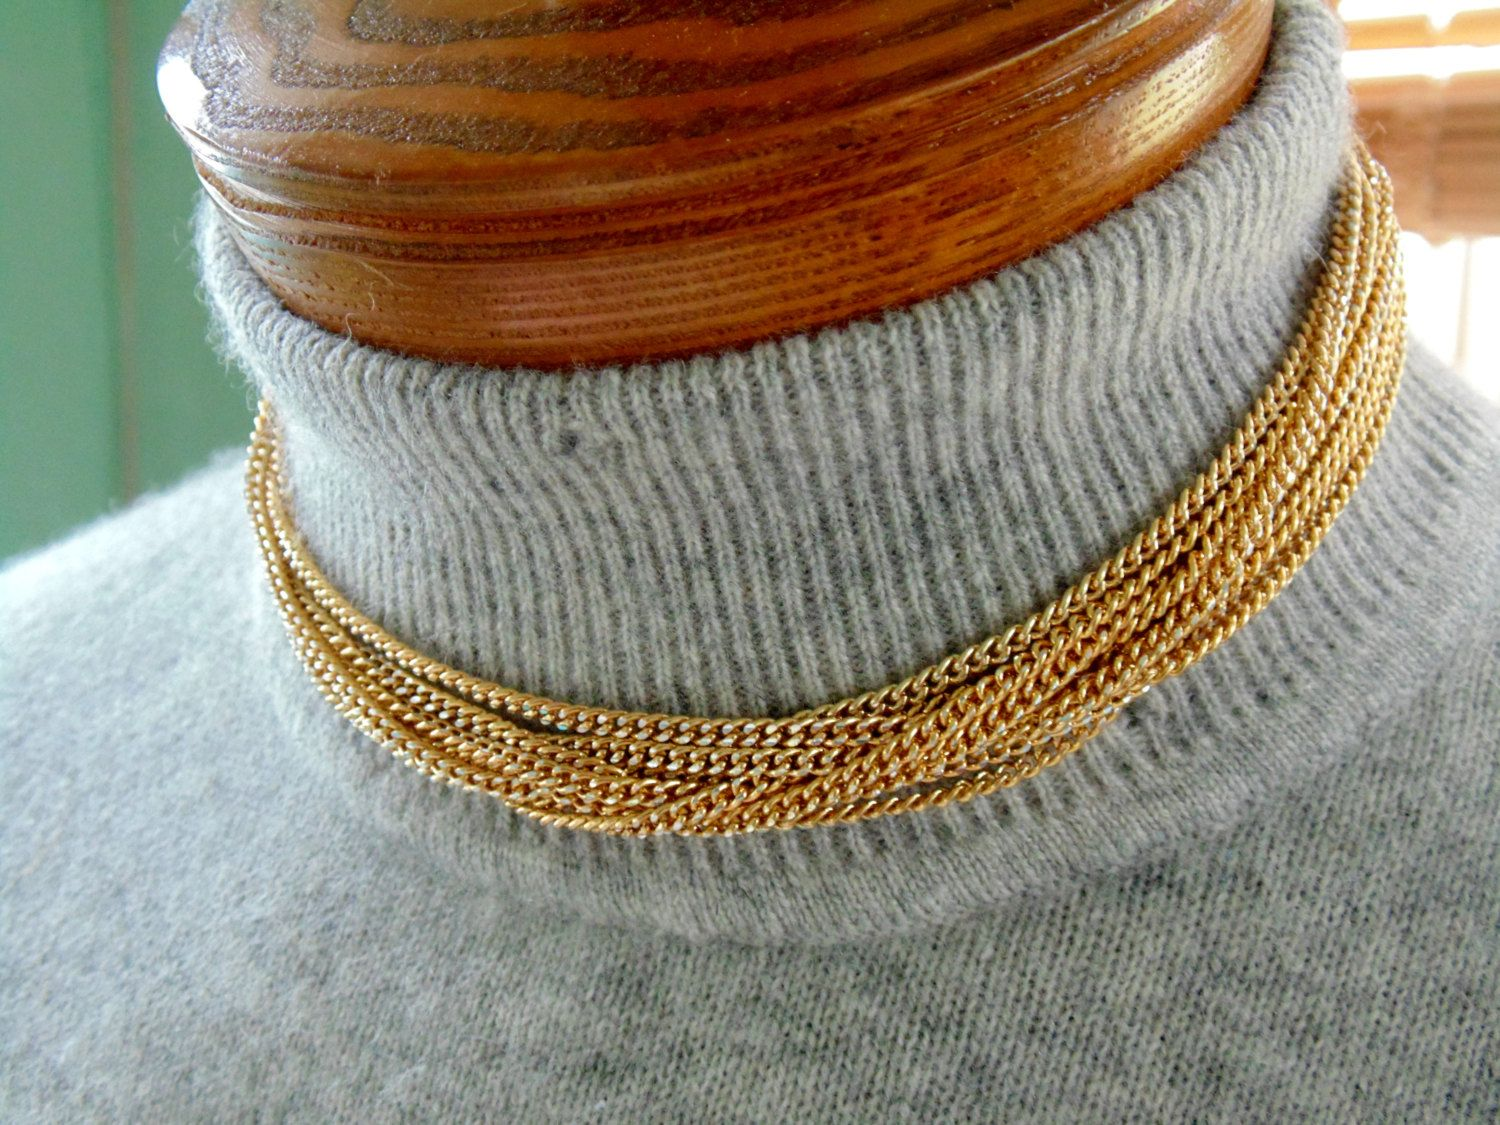 Gold ELOXAL CHOKER NECKLACE 1950s 1960s Les Bernard 9 multistrand Gold Tone Textured Chain by OurVintageWay on Etsy